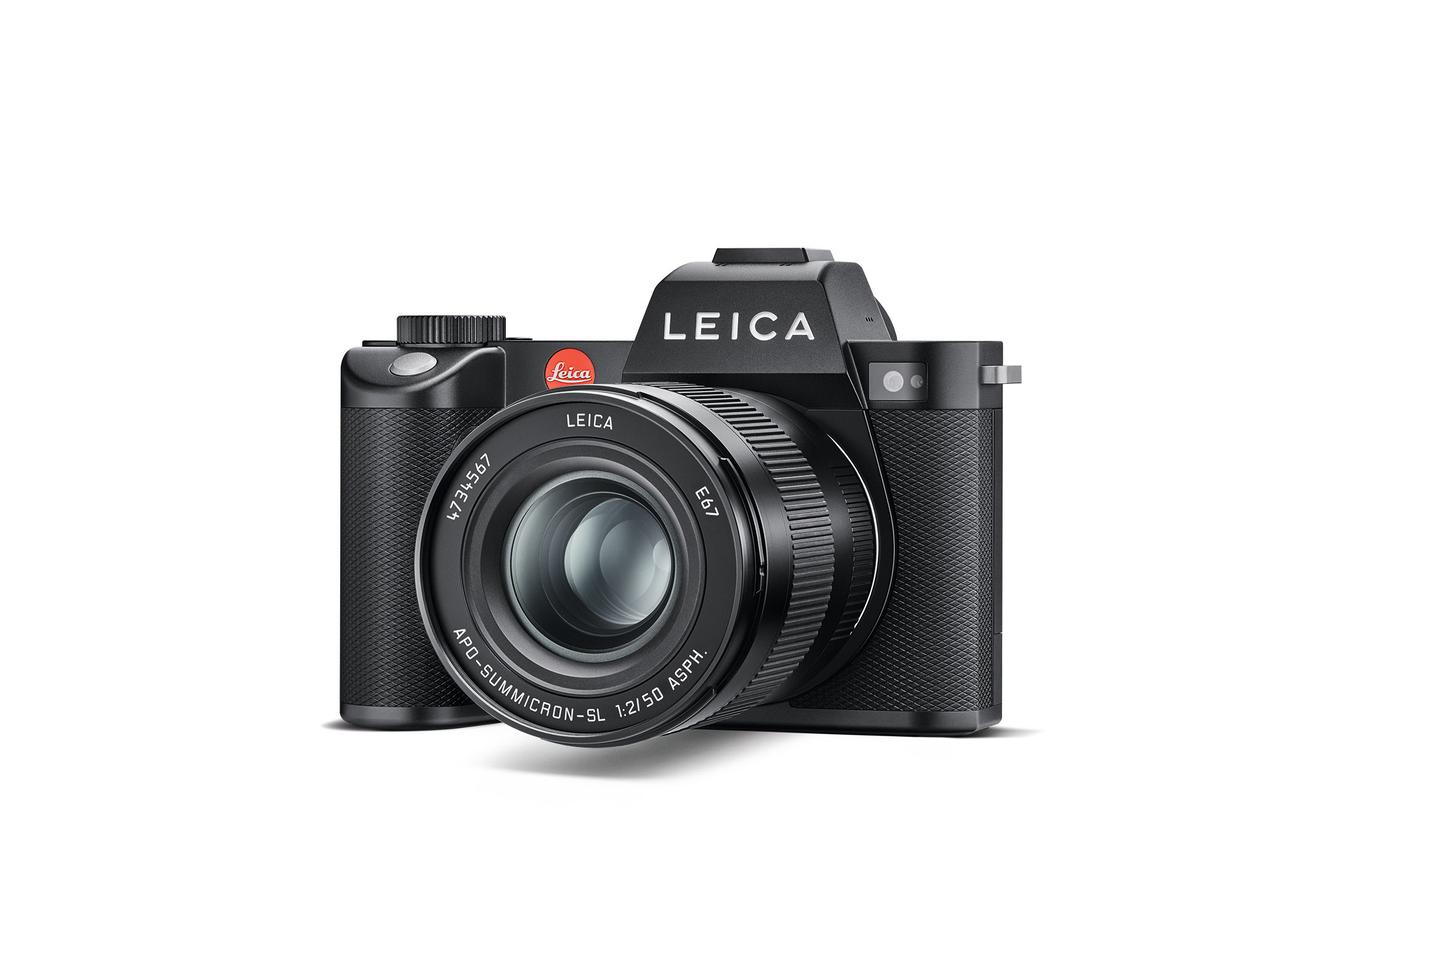 Leica says that it's improved ergonomics and weather-sealing, but managed to retain the same overall dimensions as the predecessor